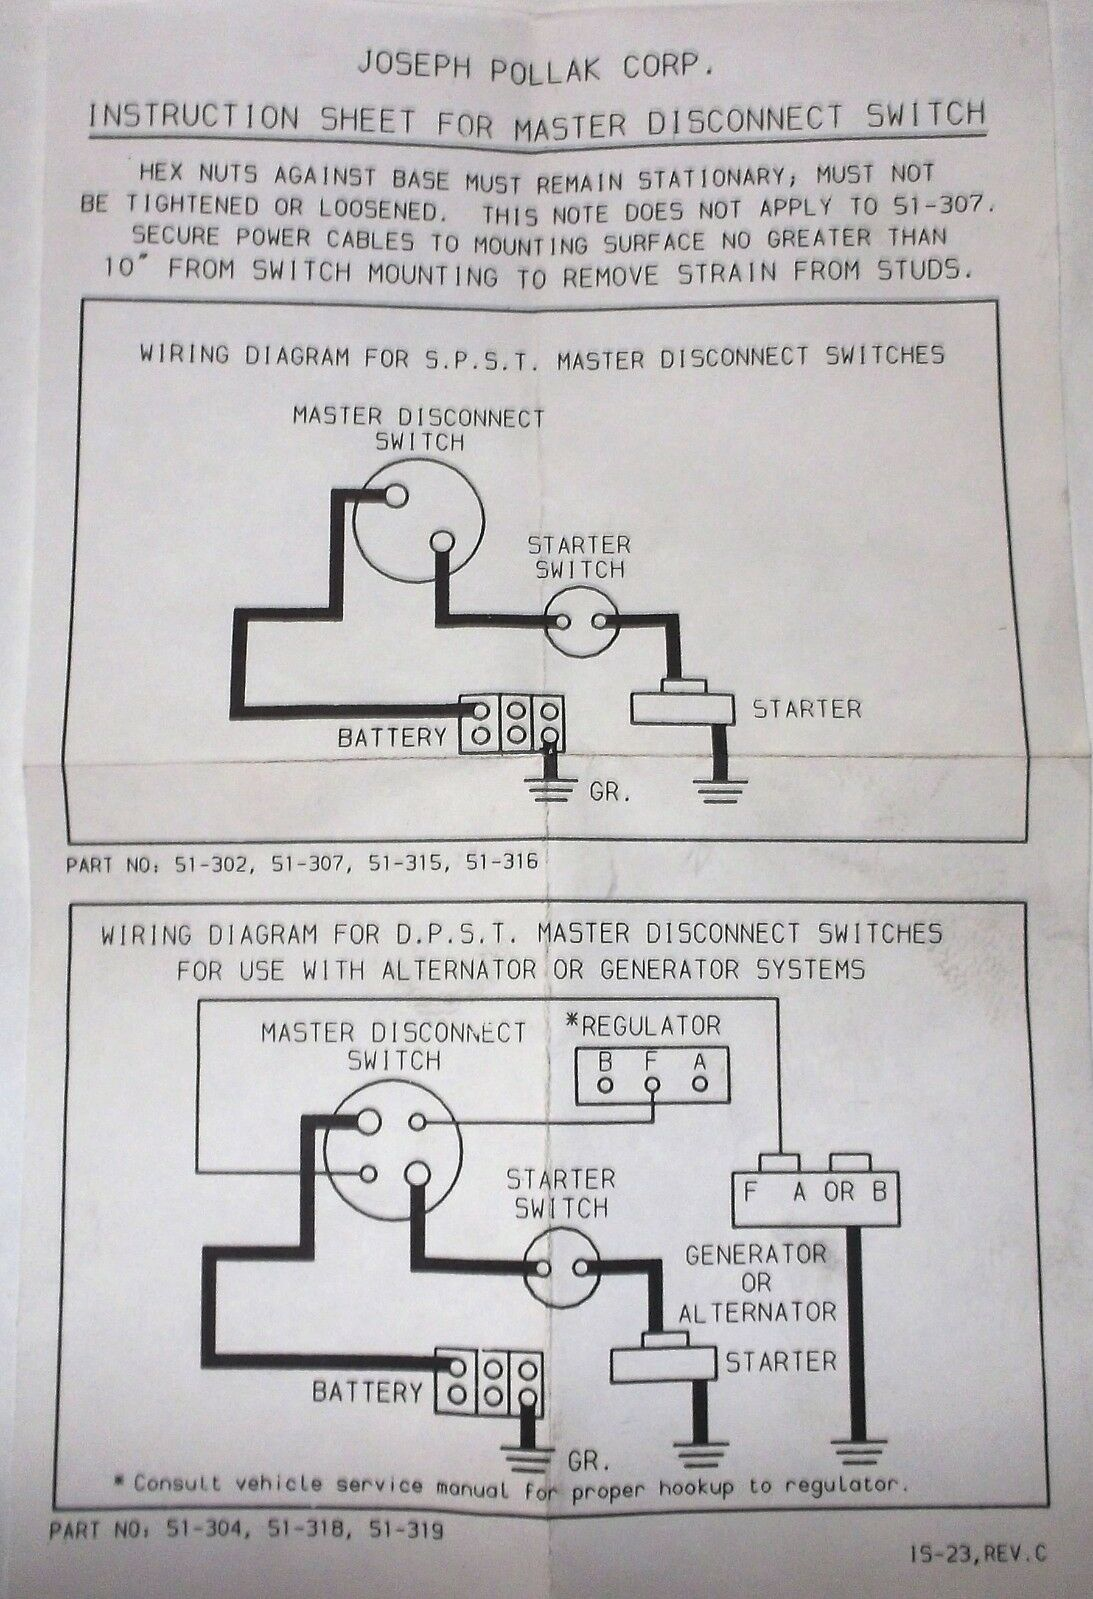 hight resolution of pollak master disconnect switch wiring diagram pollak original p n 51 315 keyless